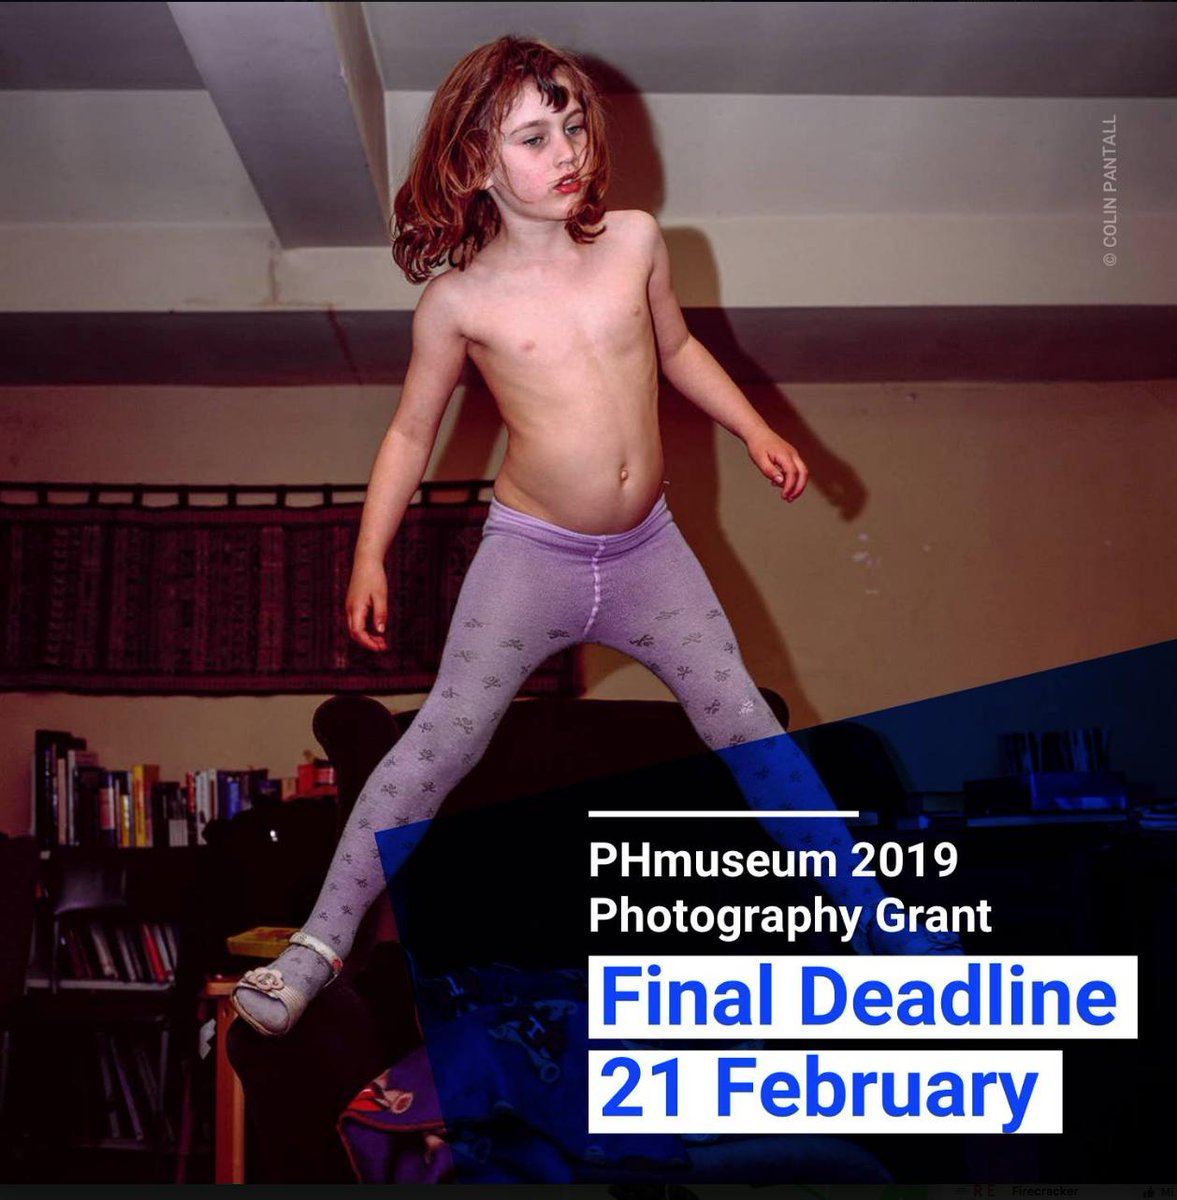 ONLY A WEEK LEFT TO APPLY | DEADLINE 21 FEBRUARY | Present your work for £15,000 in cash prizes and MUCH more at http://phmuseum.com/grant